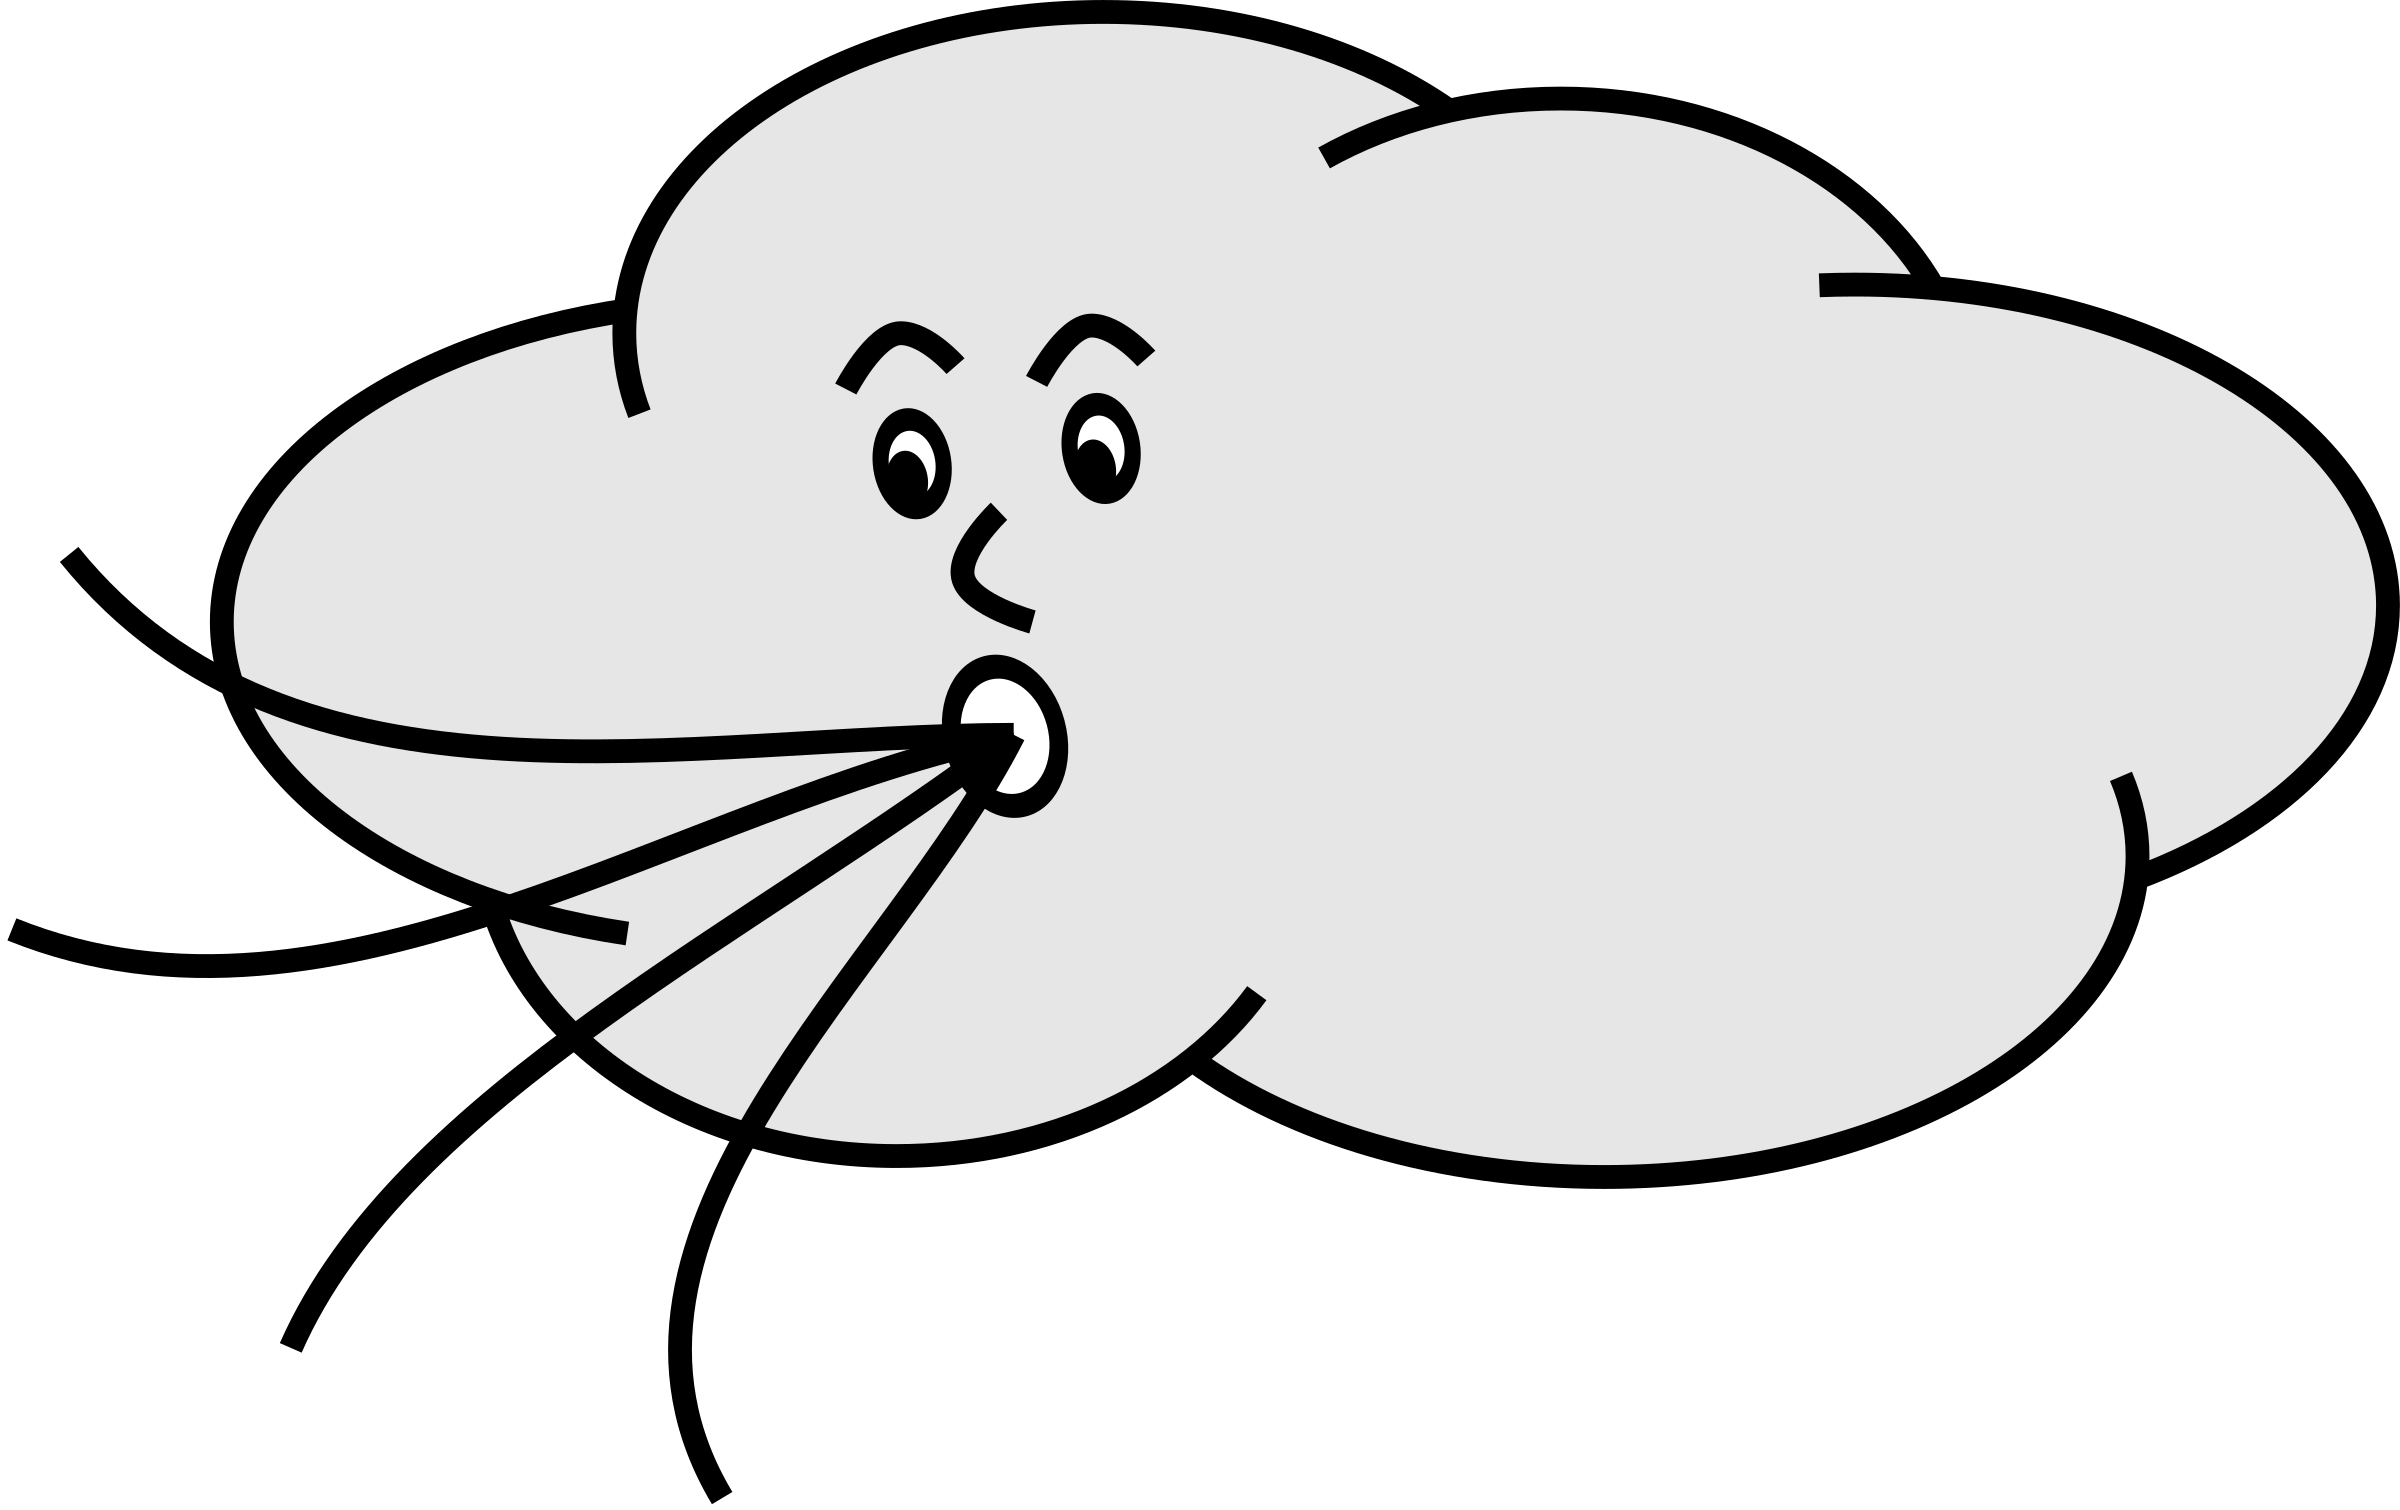 Sun blowing wind clipart image library 28+ Collection of Cloud Wind Clipart | High quality, free cliparts ... image library